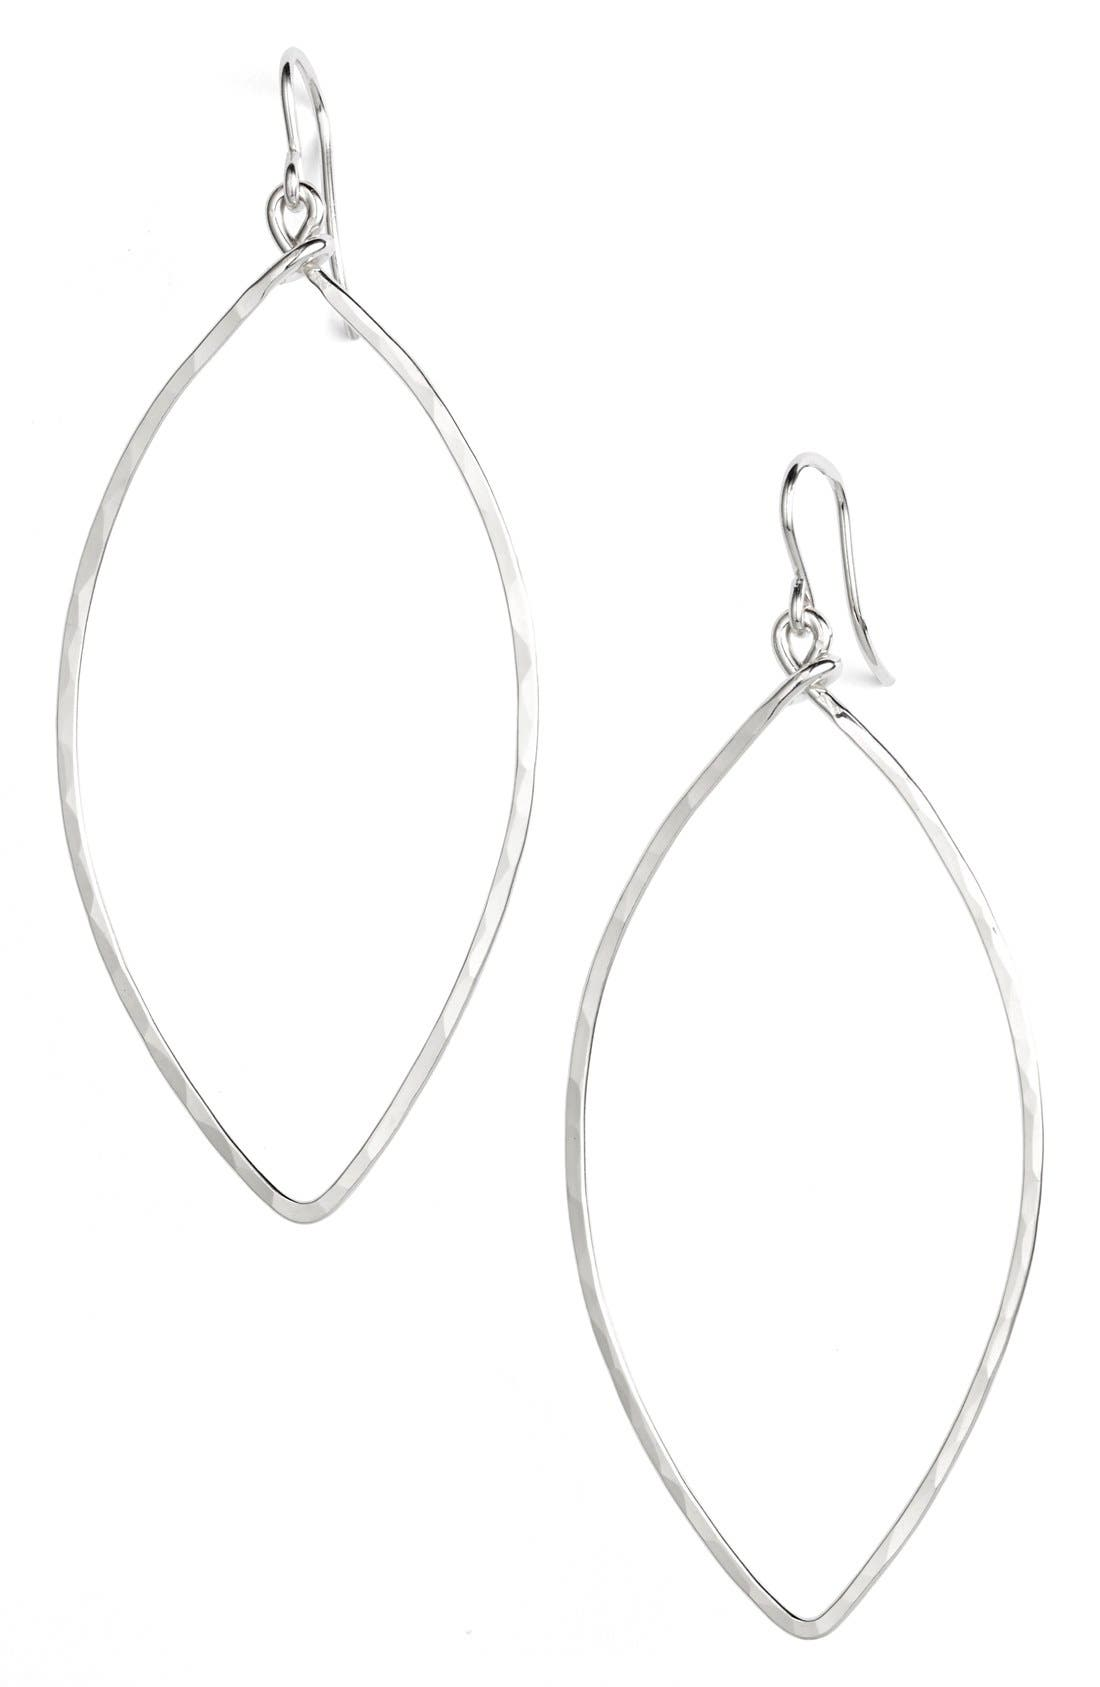 Ija Sterling Silver Oblong Hoop Earrings,                         Main,                         color, 040